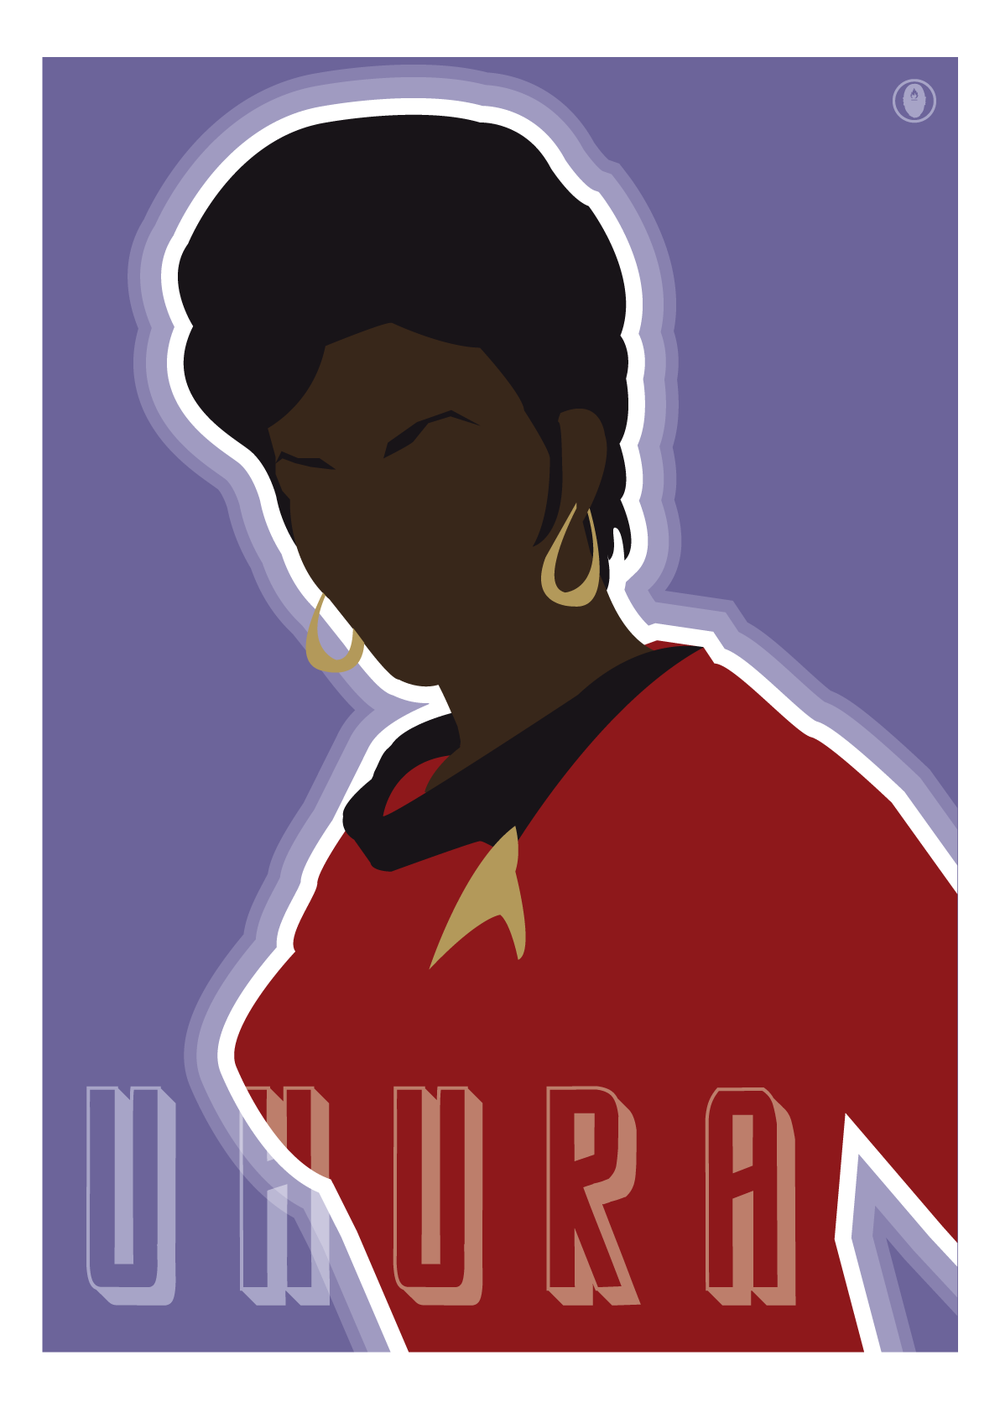 Image of 'LT. UHURA'